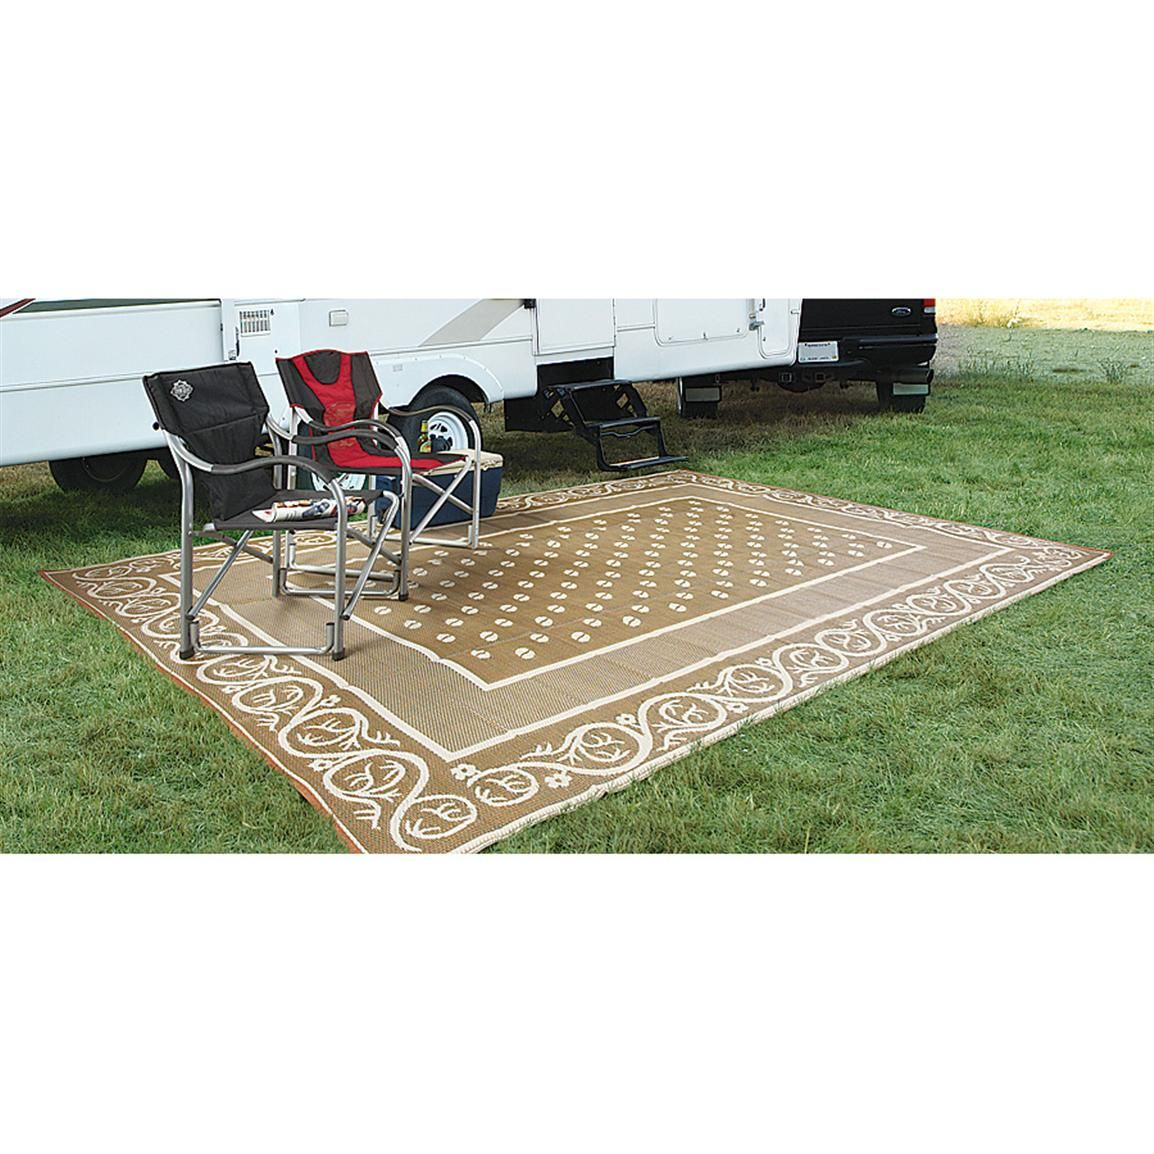 Guide Gear 9x12u0027 Reversible Patio / Rv Mat   499643, Outdoor Rugs U0026 Mats